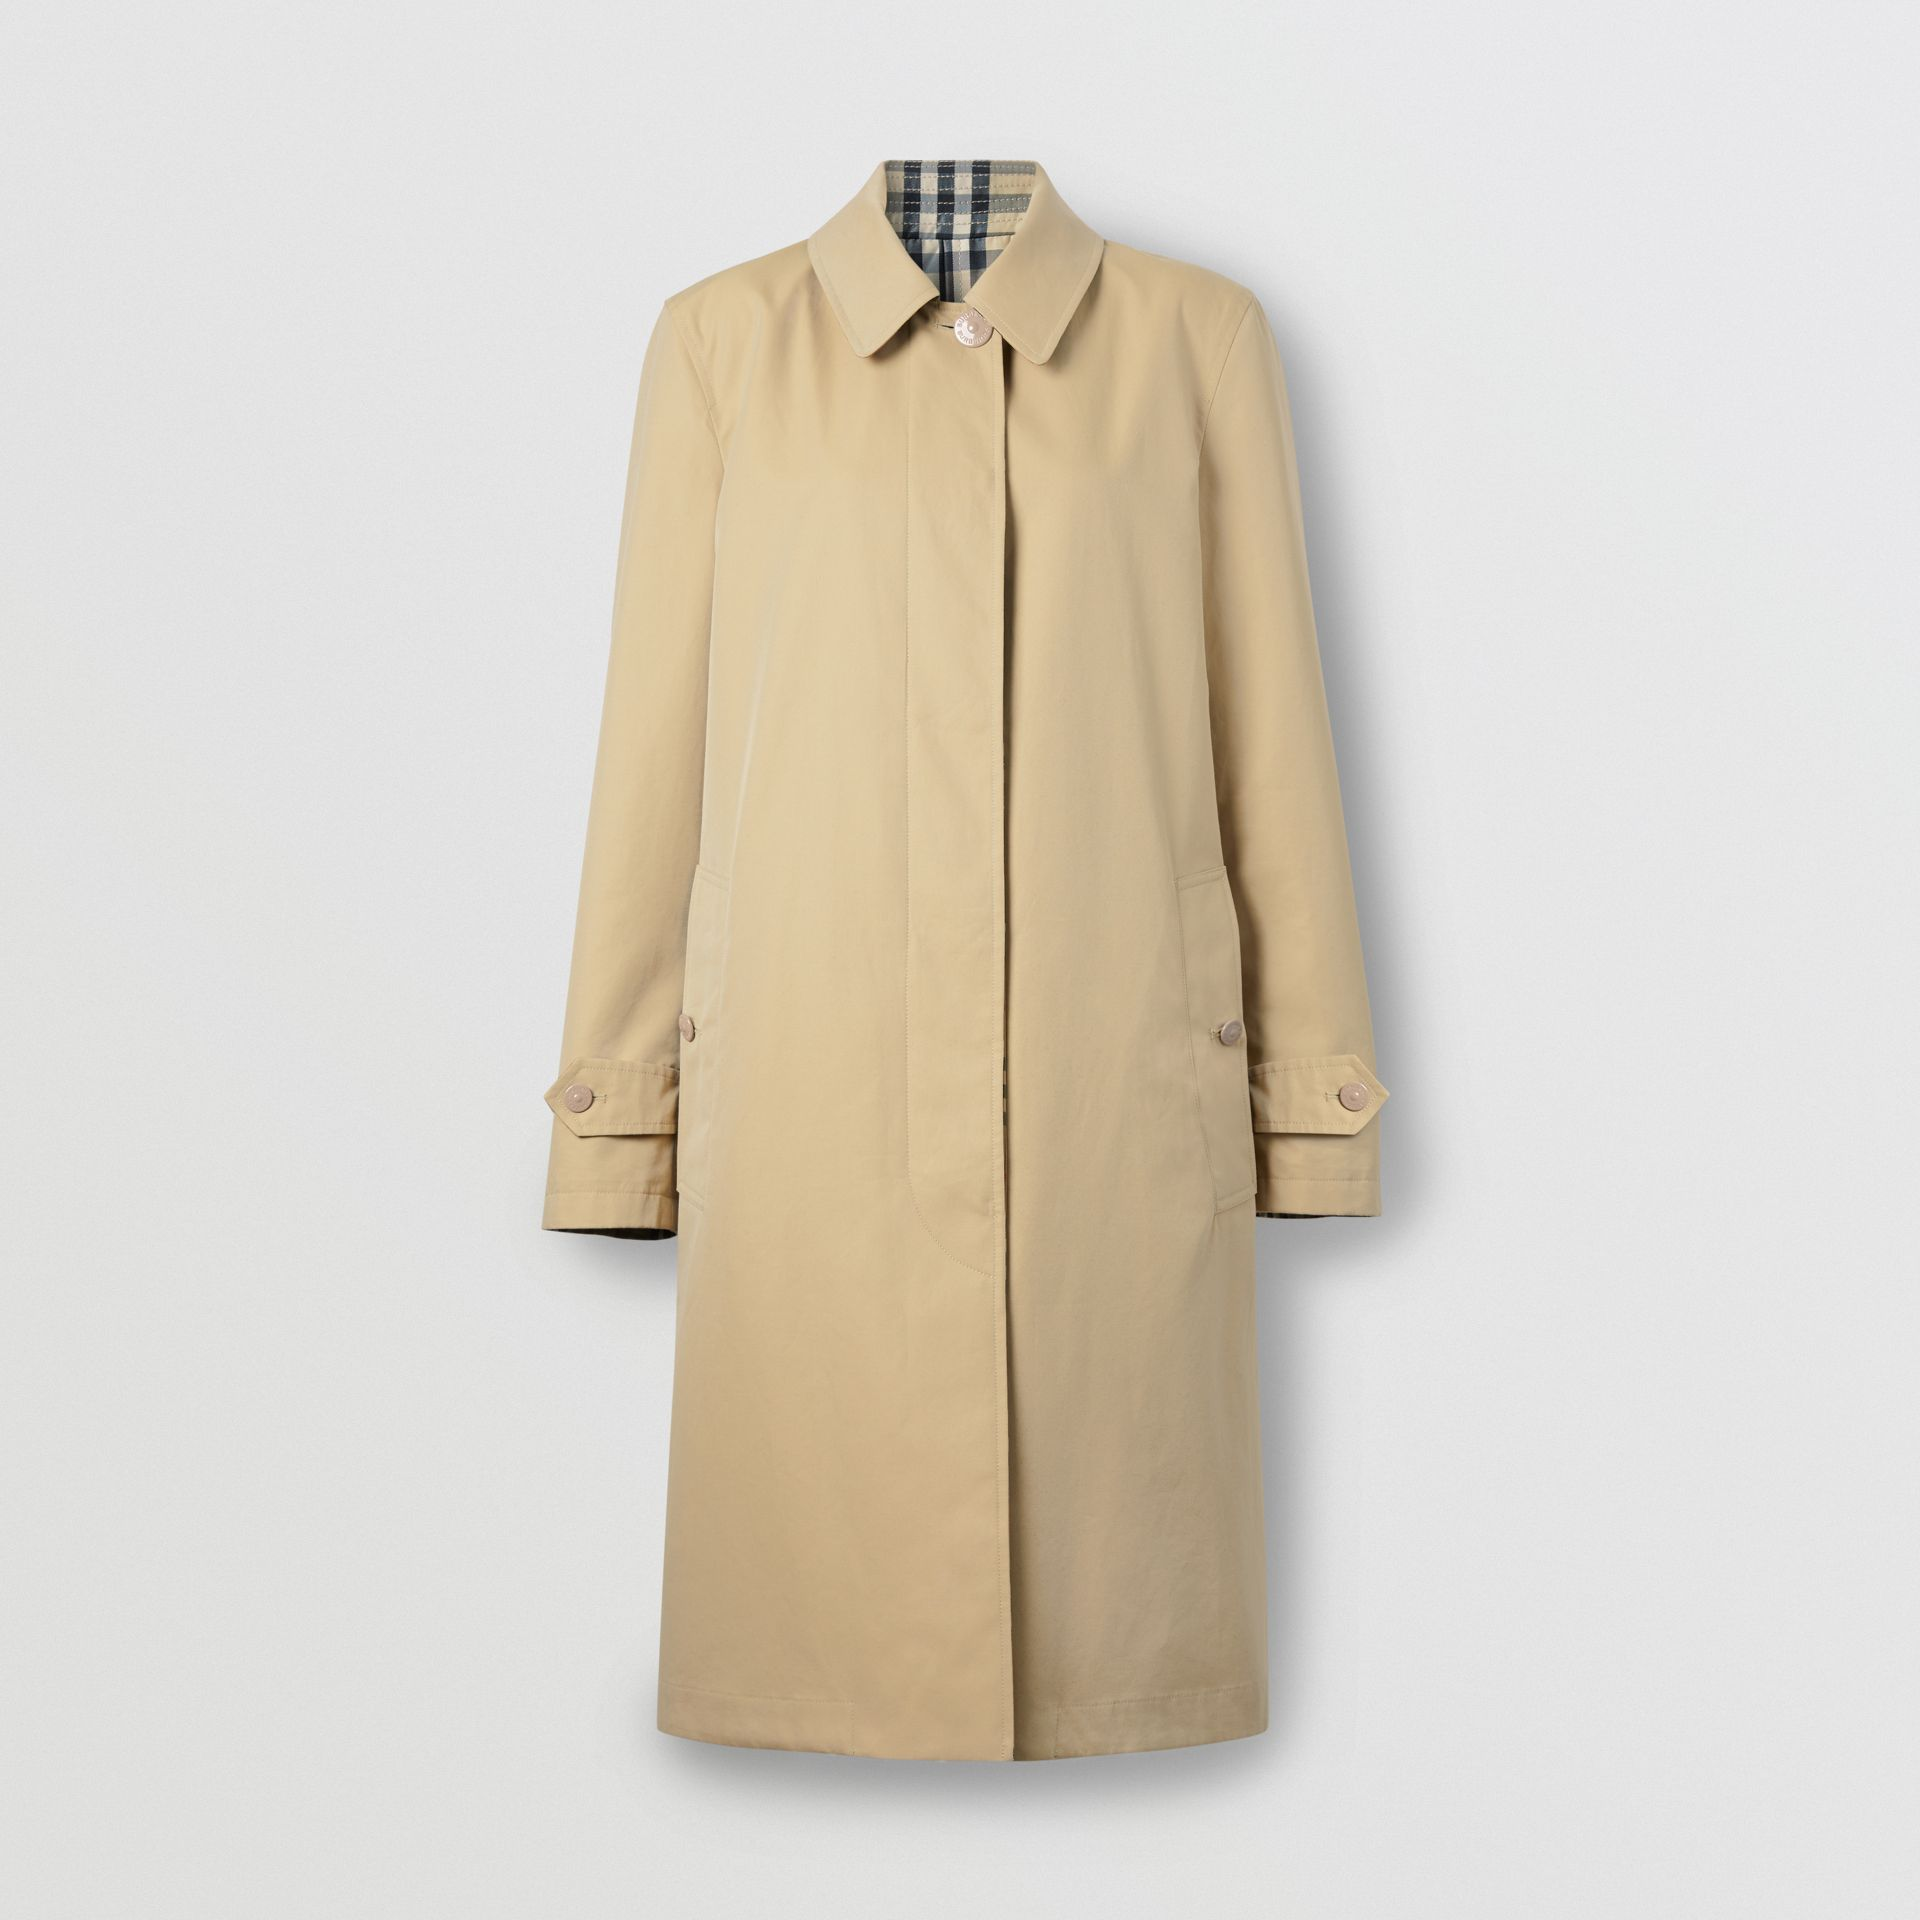 Reversible Cotton and Vintage Check Car Coat in Honey - Women | Burberry - gallery image 2